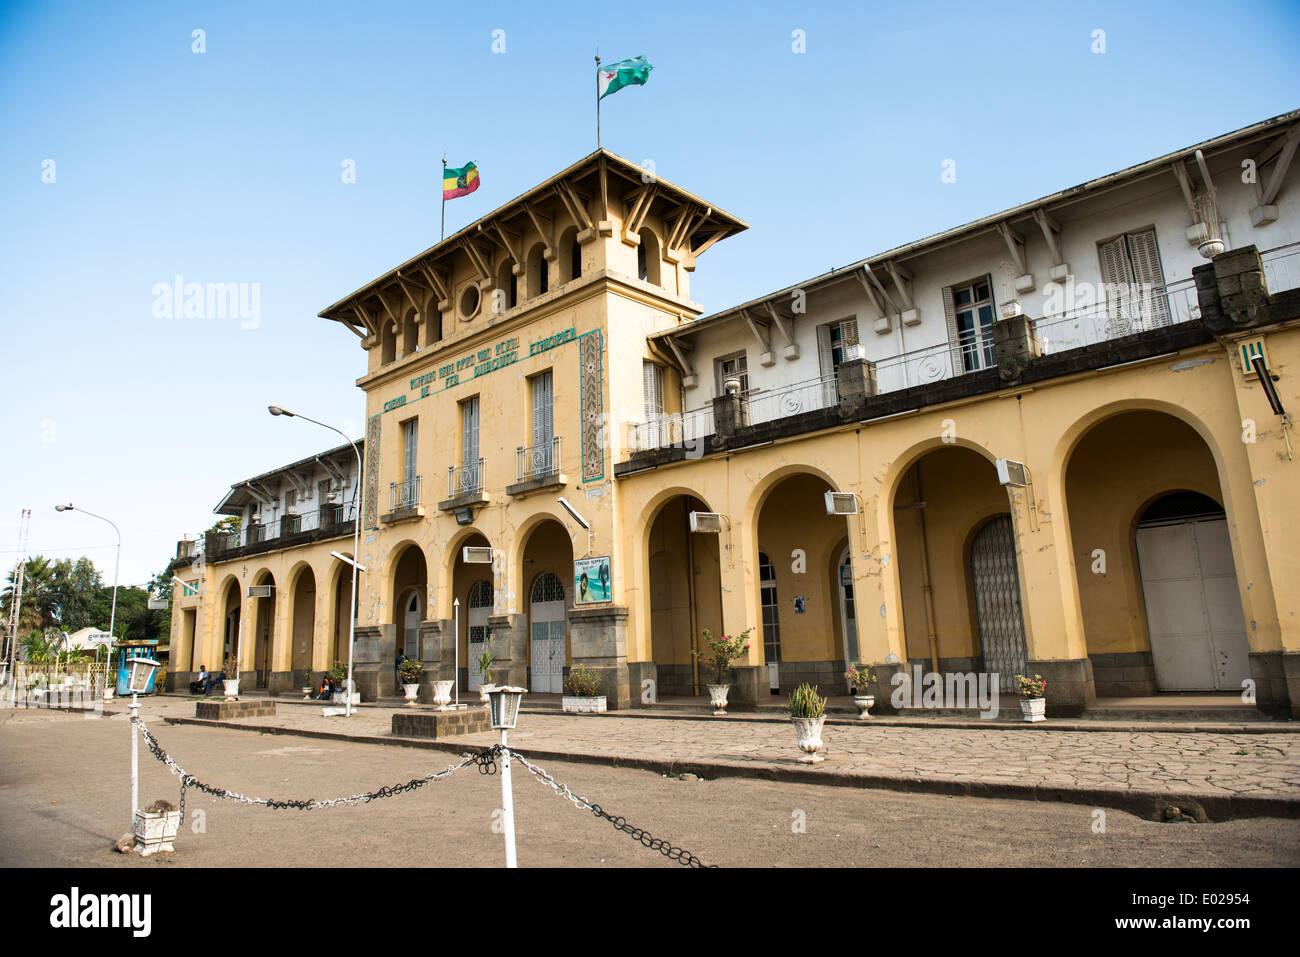 The Ethiopia- Djibouti railway station in Addis Ababa. - Stock Image